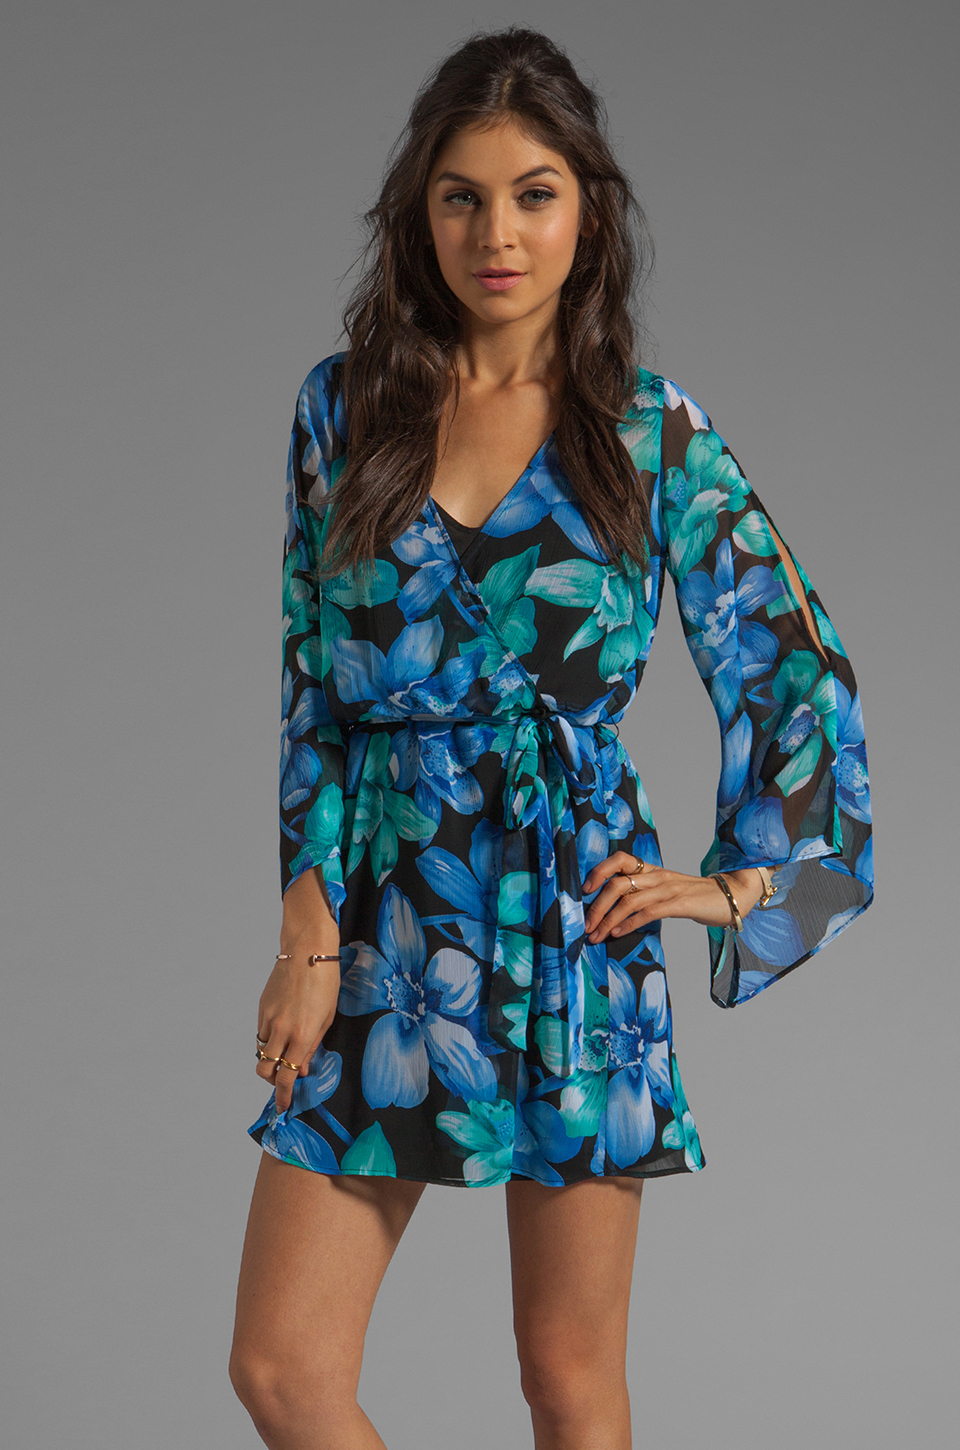 Dolce Vita Rexxy Hawaiian Floral Bell Sleeve Dress in Blue/Green